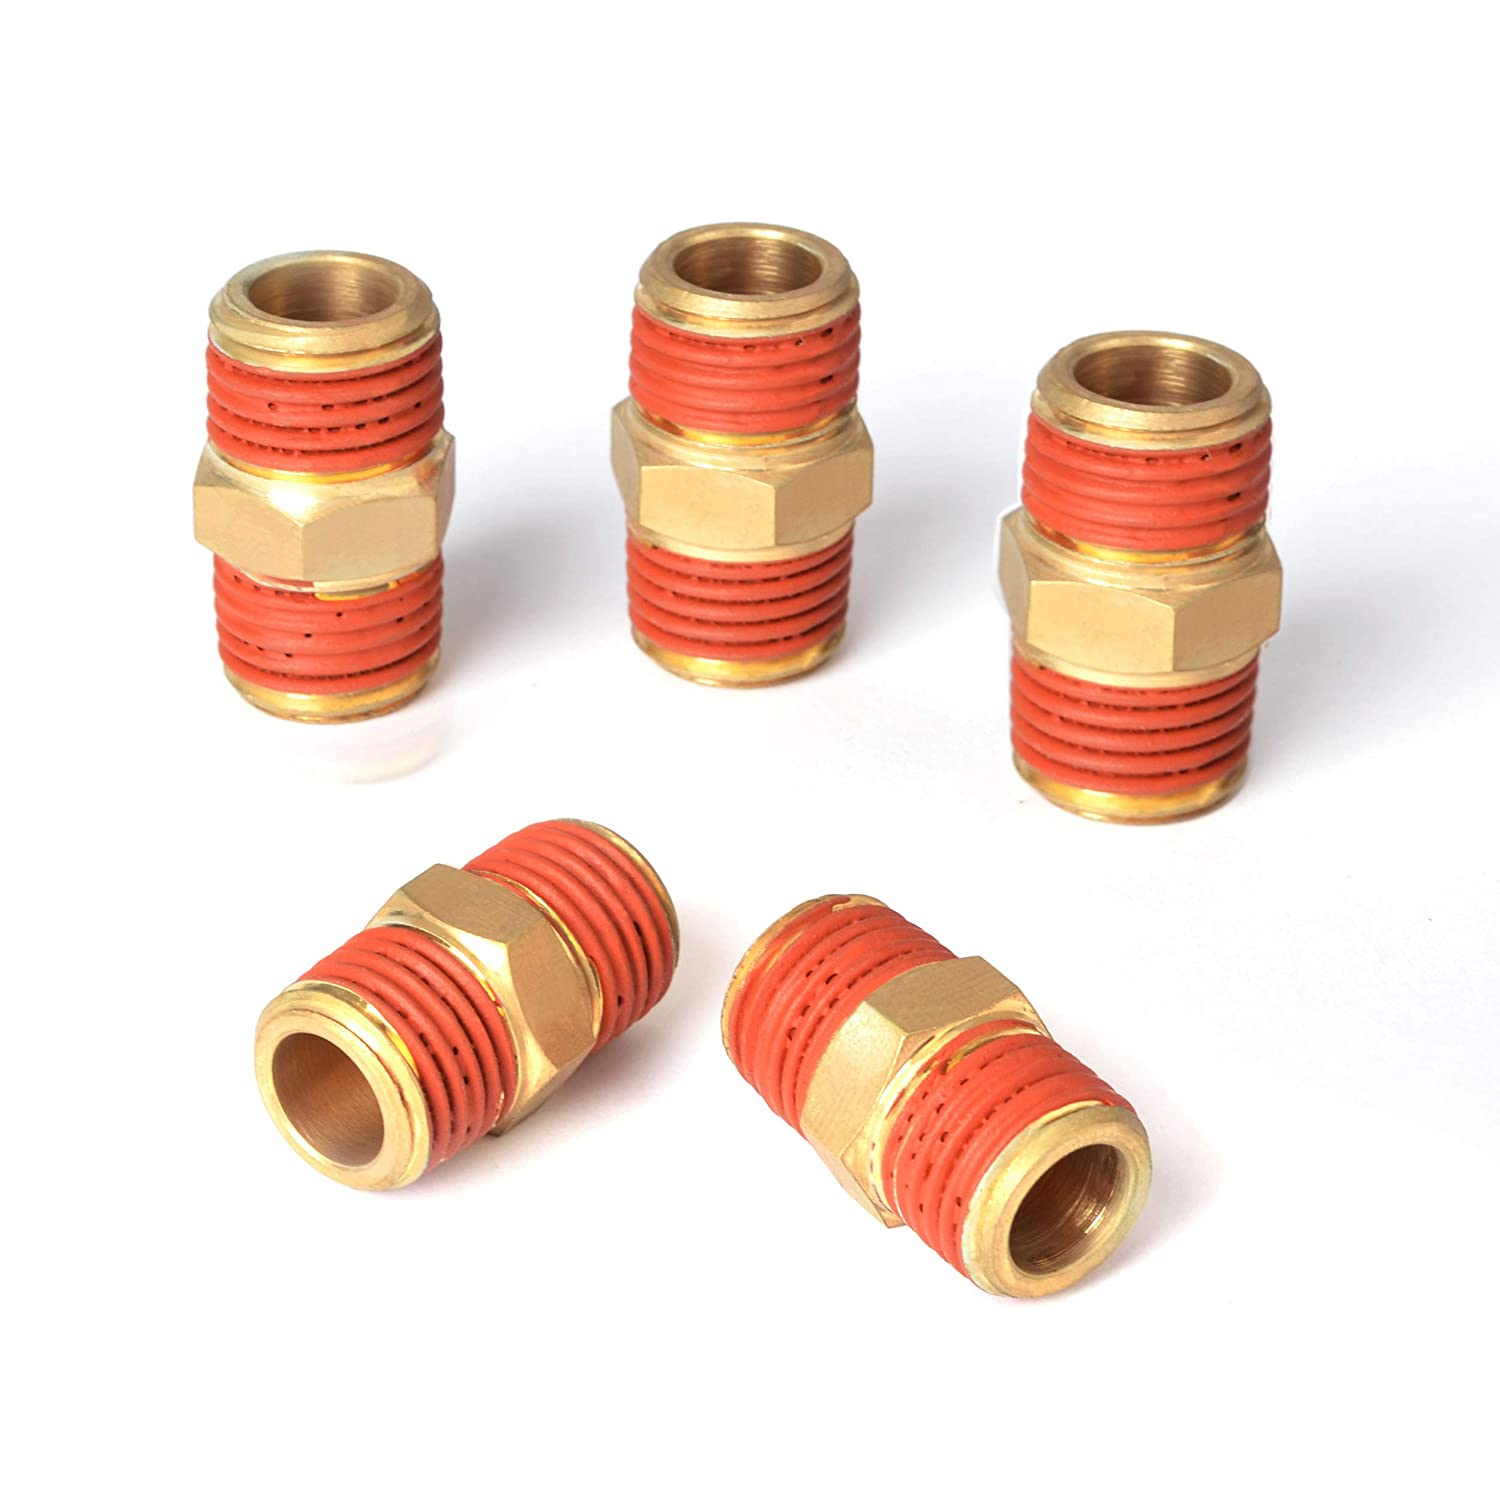 Male Coupling 1//4-Inch NPT x 1//4-Inch NPT PowRyte Elite Solid Brass Air Hose Fitings 5-Pack